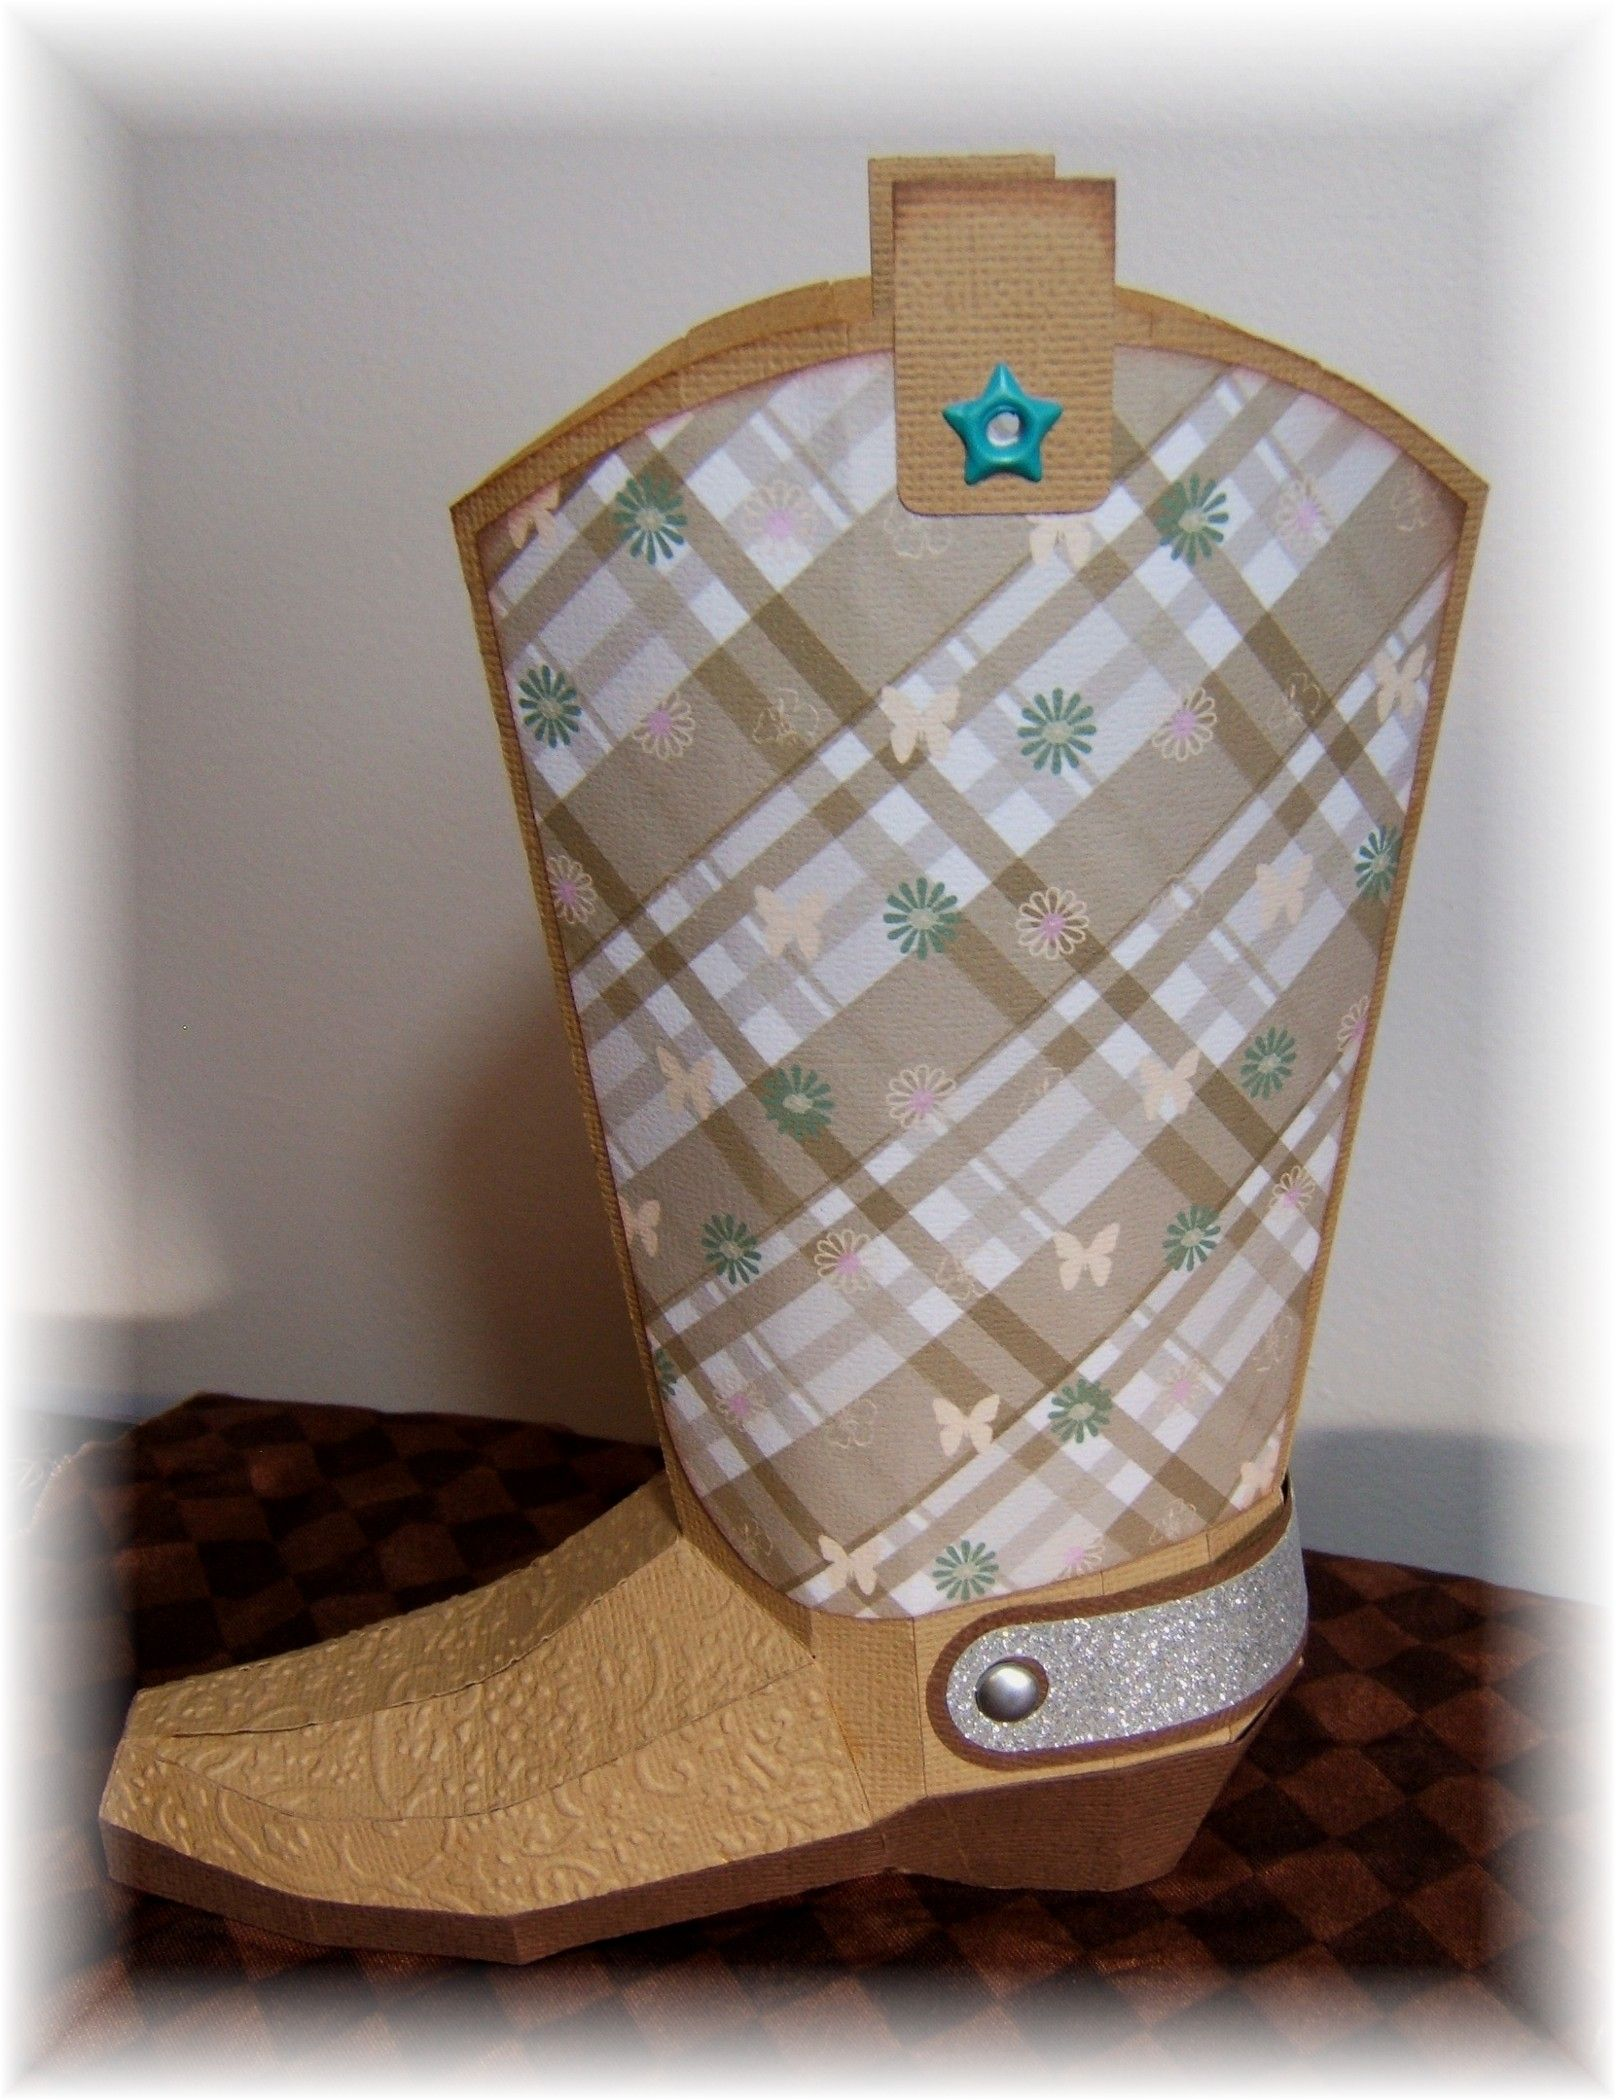 My cowgirl boot from one of the kits at Svg